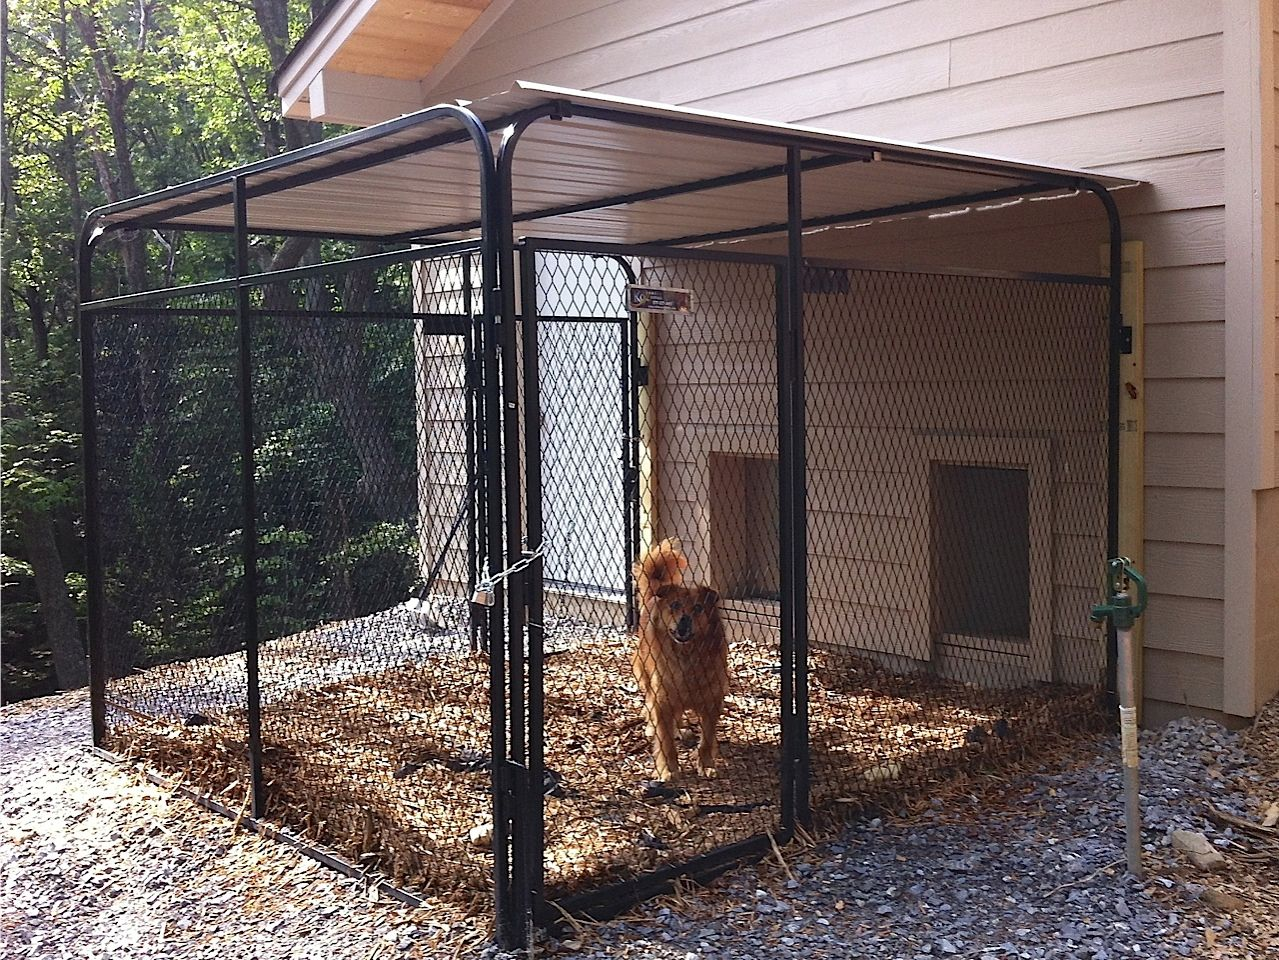 House Plans Attached Dog Run The K9kennel Series The New Standard In Dog Kennels Dog Runs Diy Dog Kennel Indoor Dog Kennel Outdoor Dog Runs